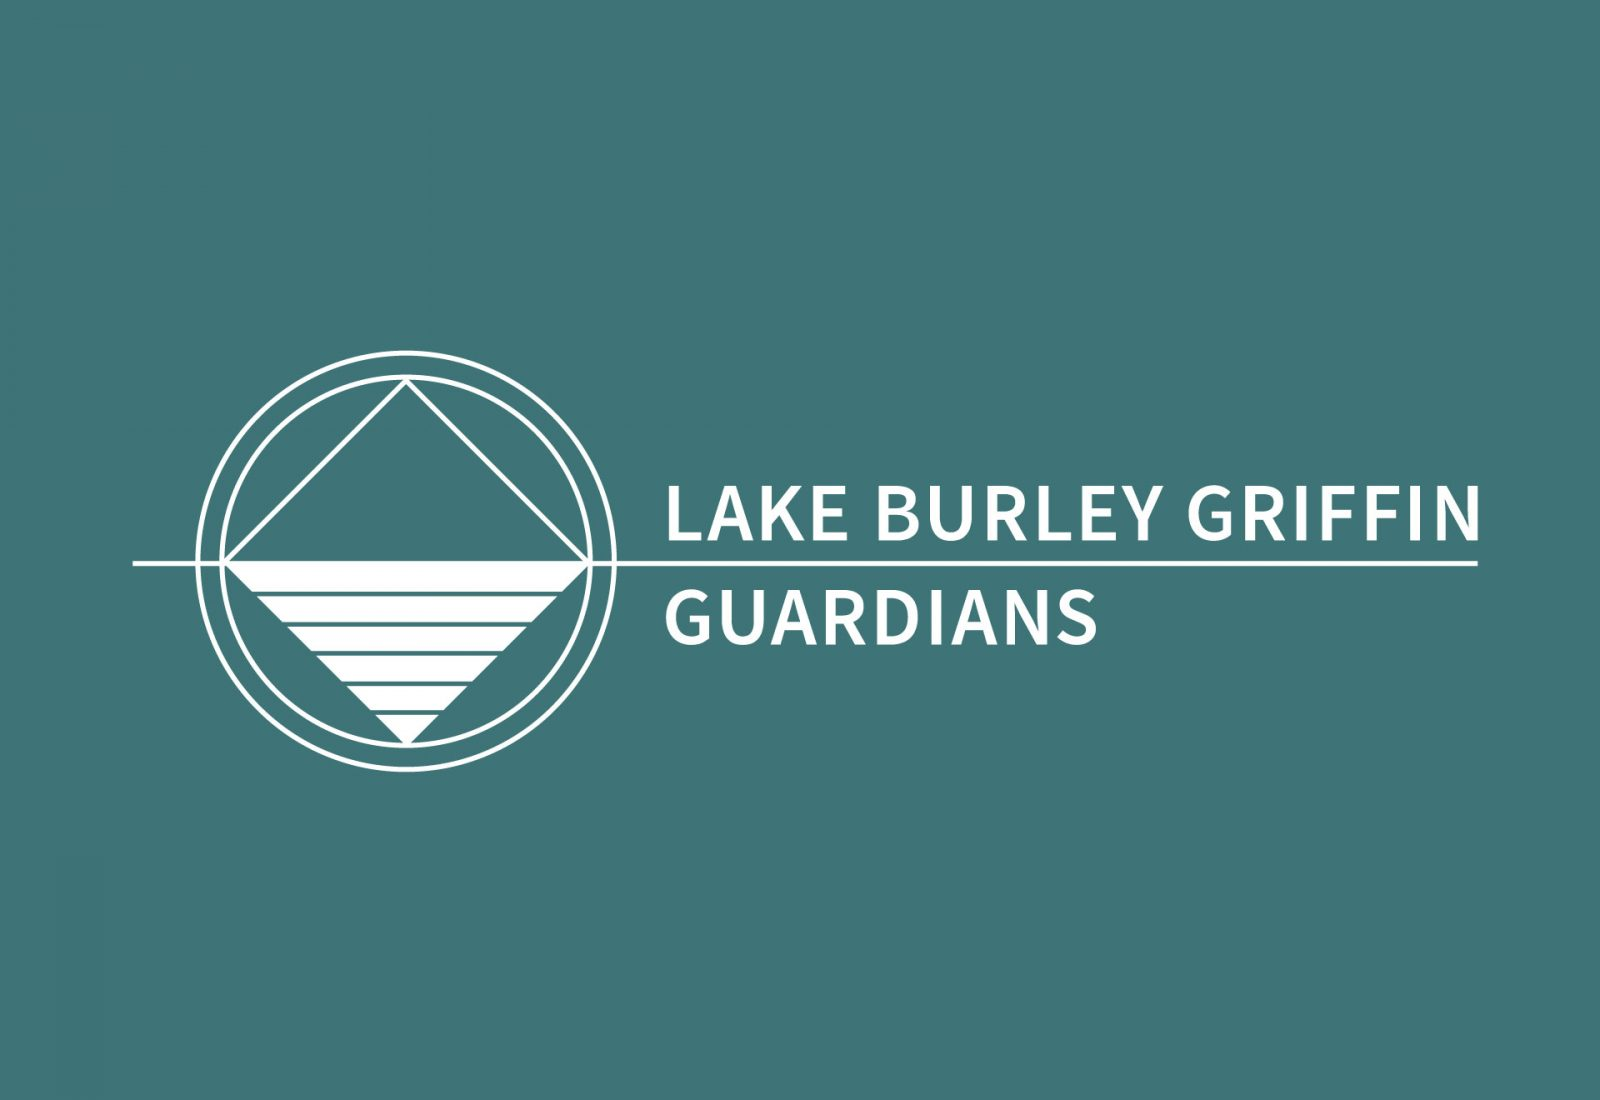 Logo design and branding for Lake Burley Griffin Guardians